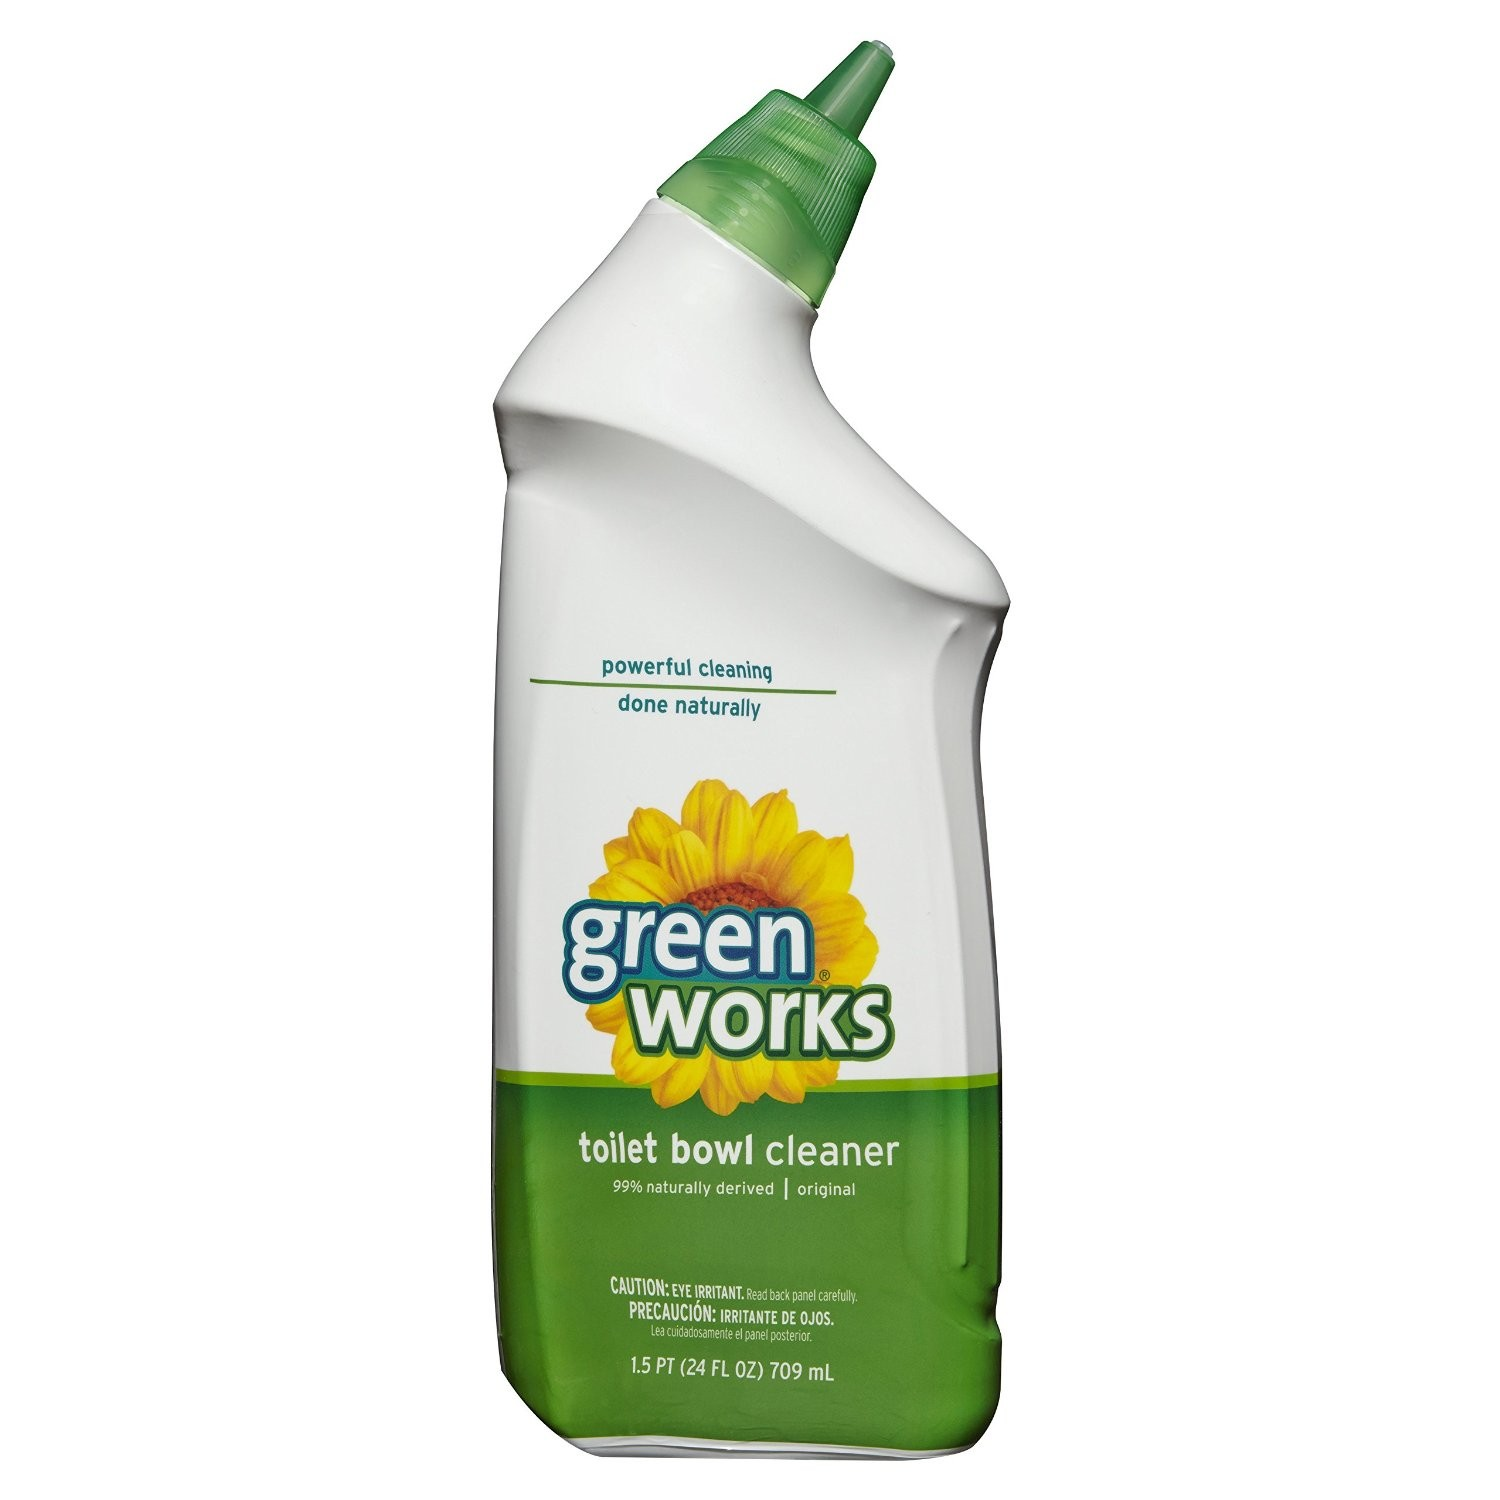 Buy The Clorox 00451 Green Works Toilet Bowl Cleaner 24